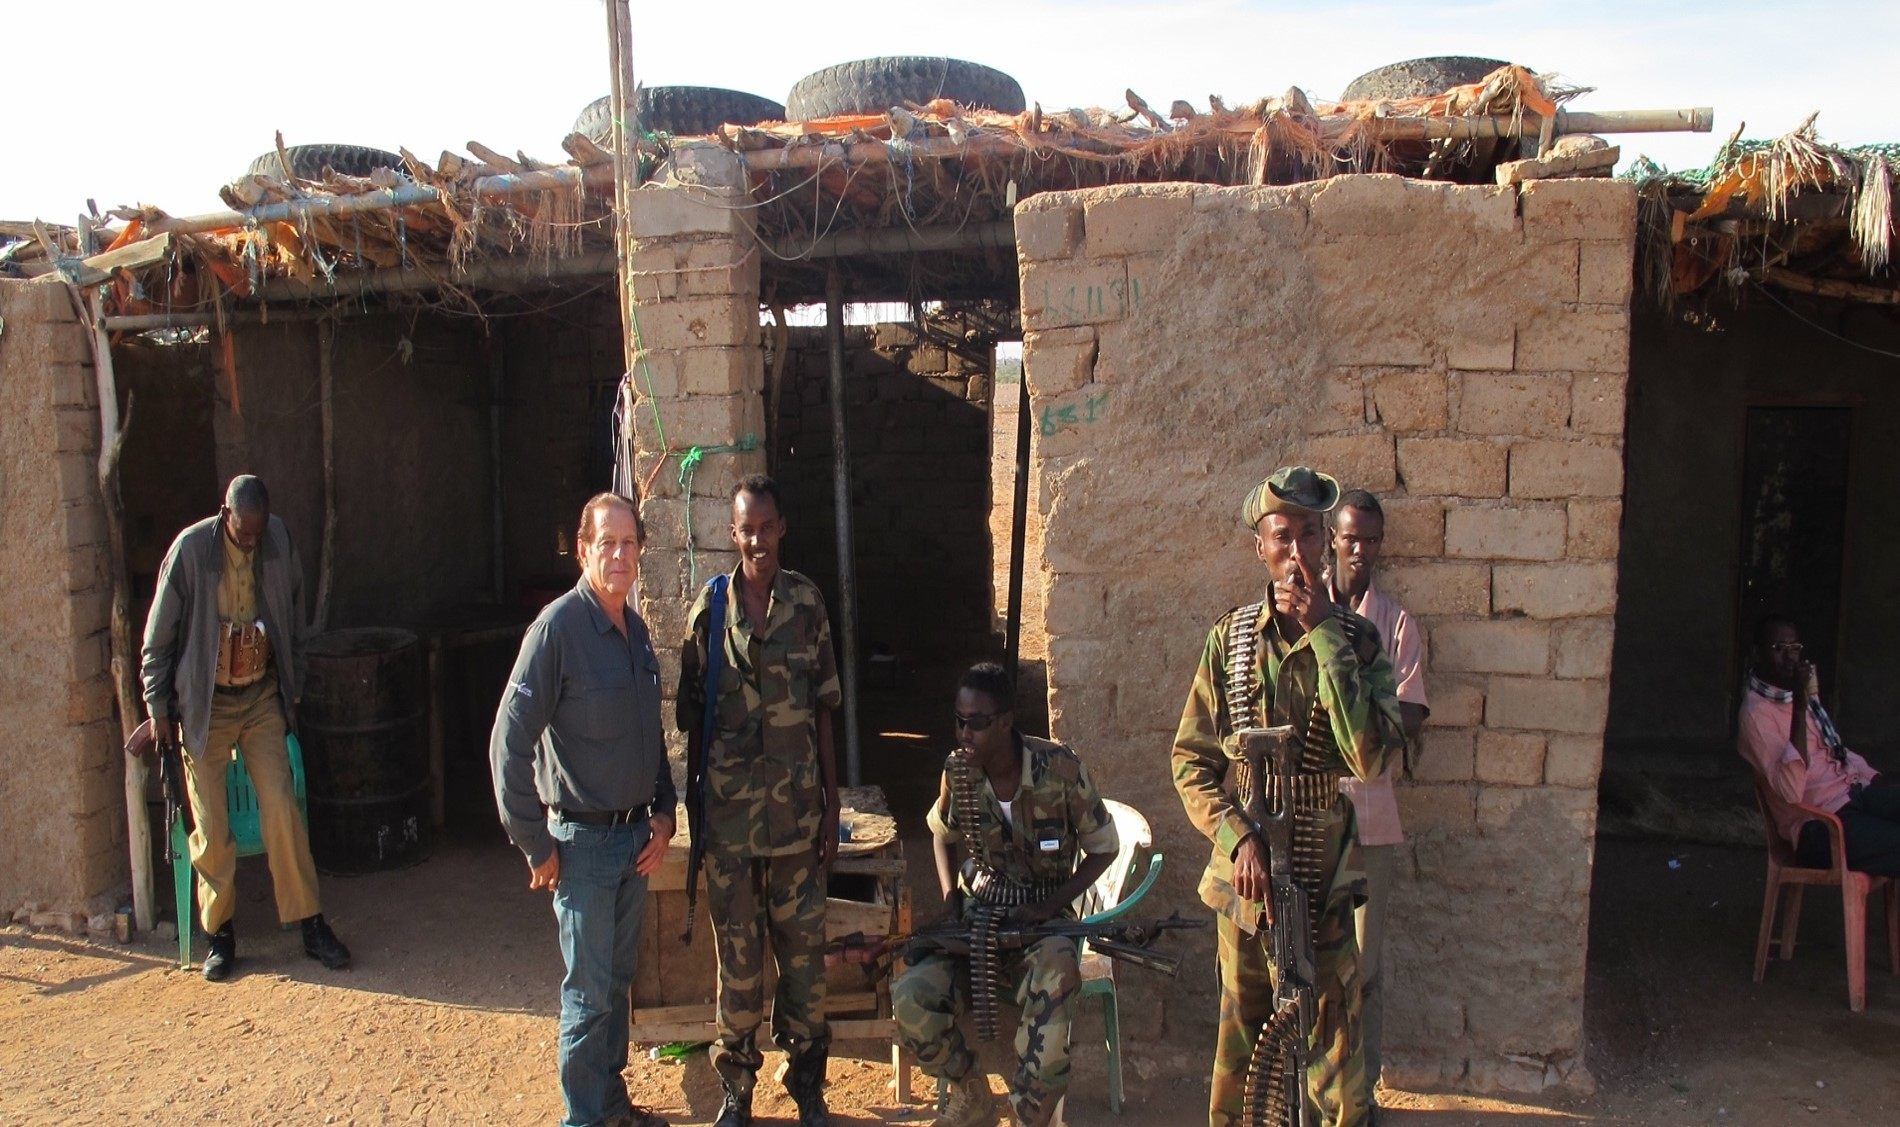 Gary with Somali soldiers tasked with guiding and protecting him on his November 2013 trip.